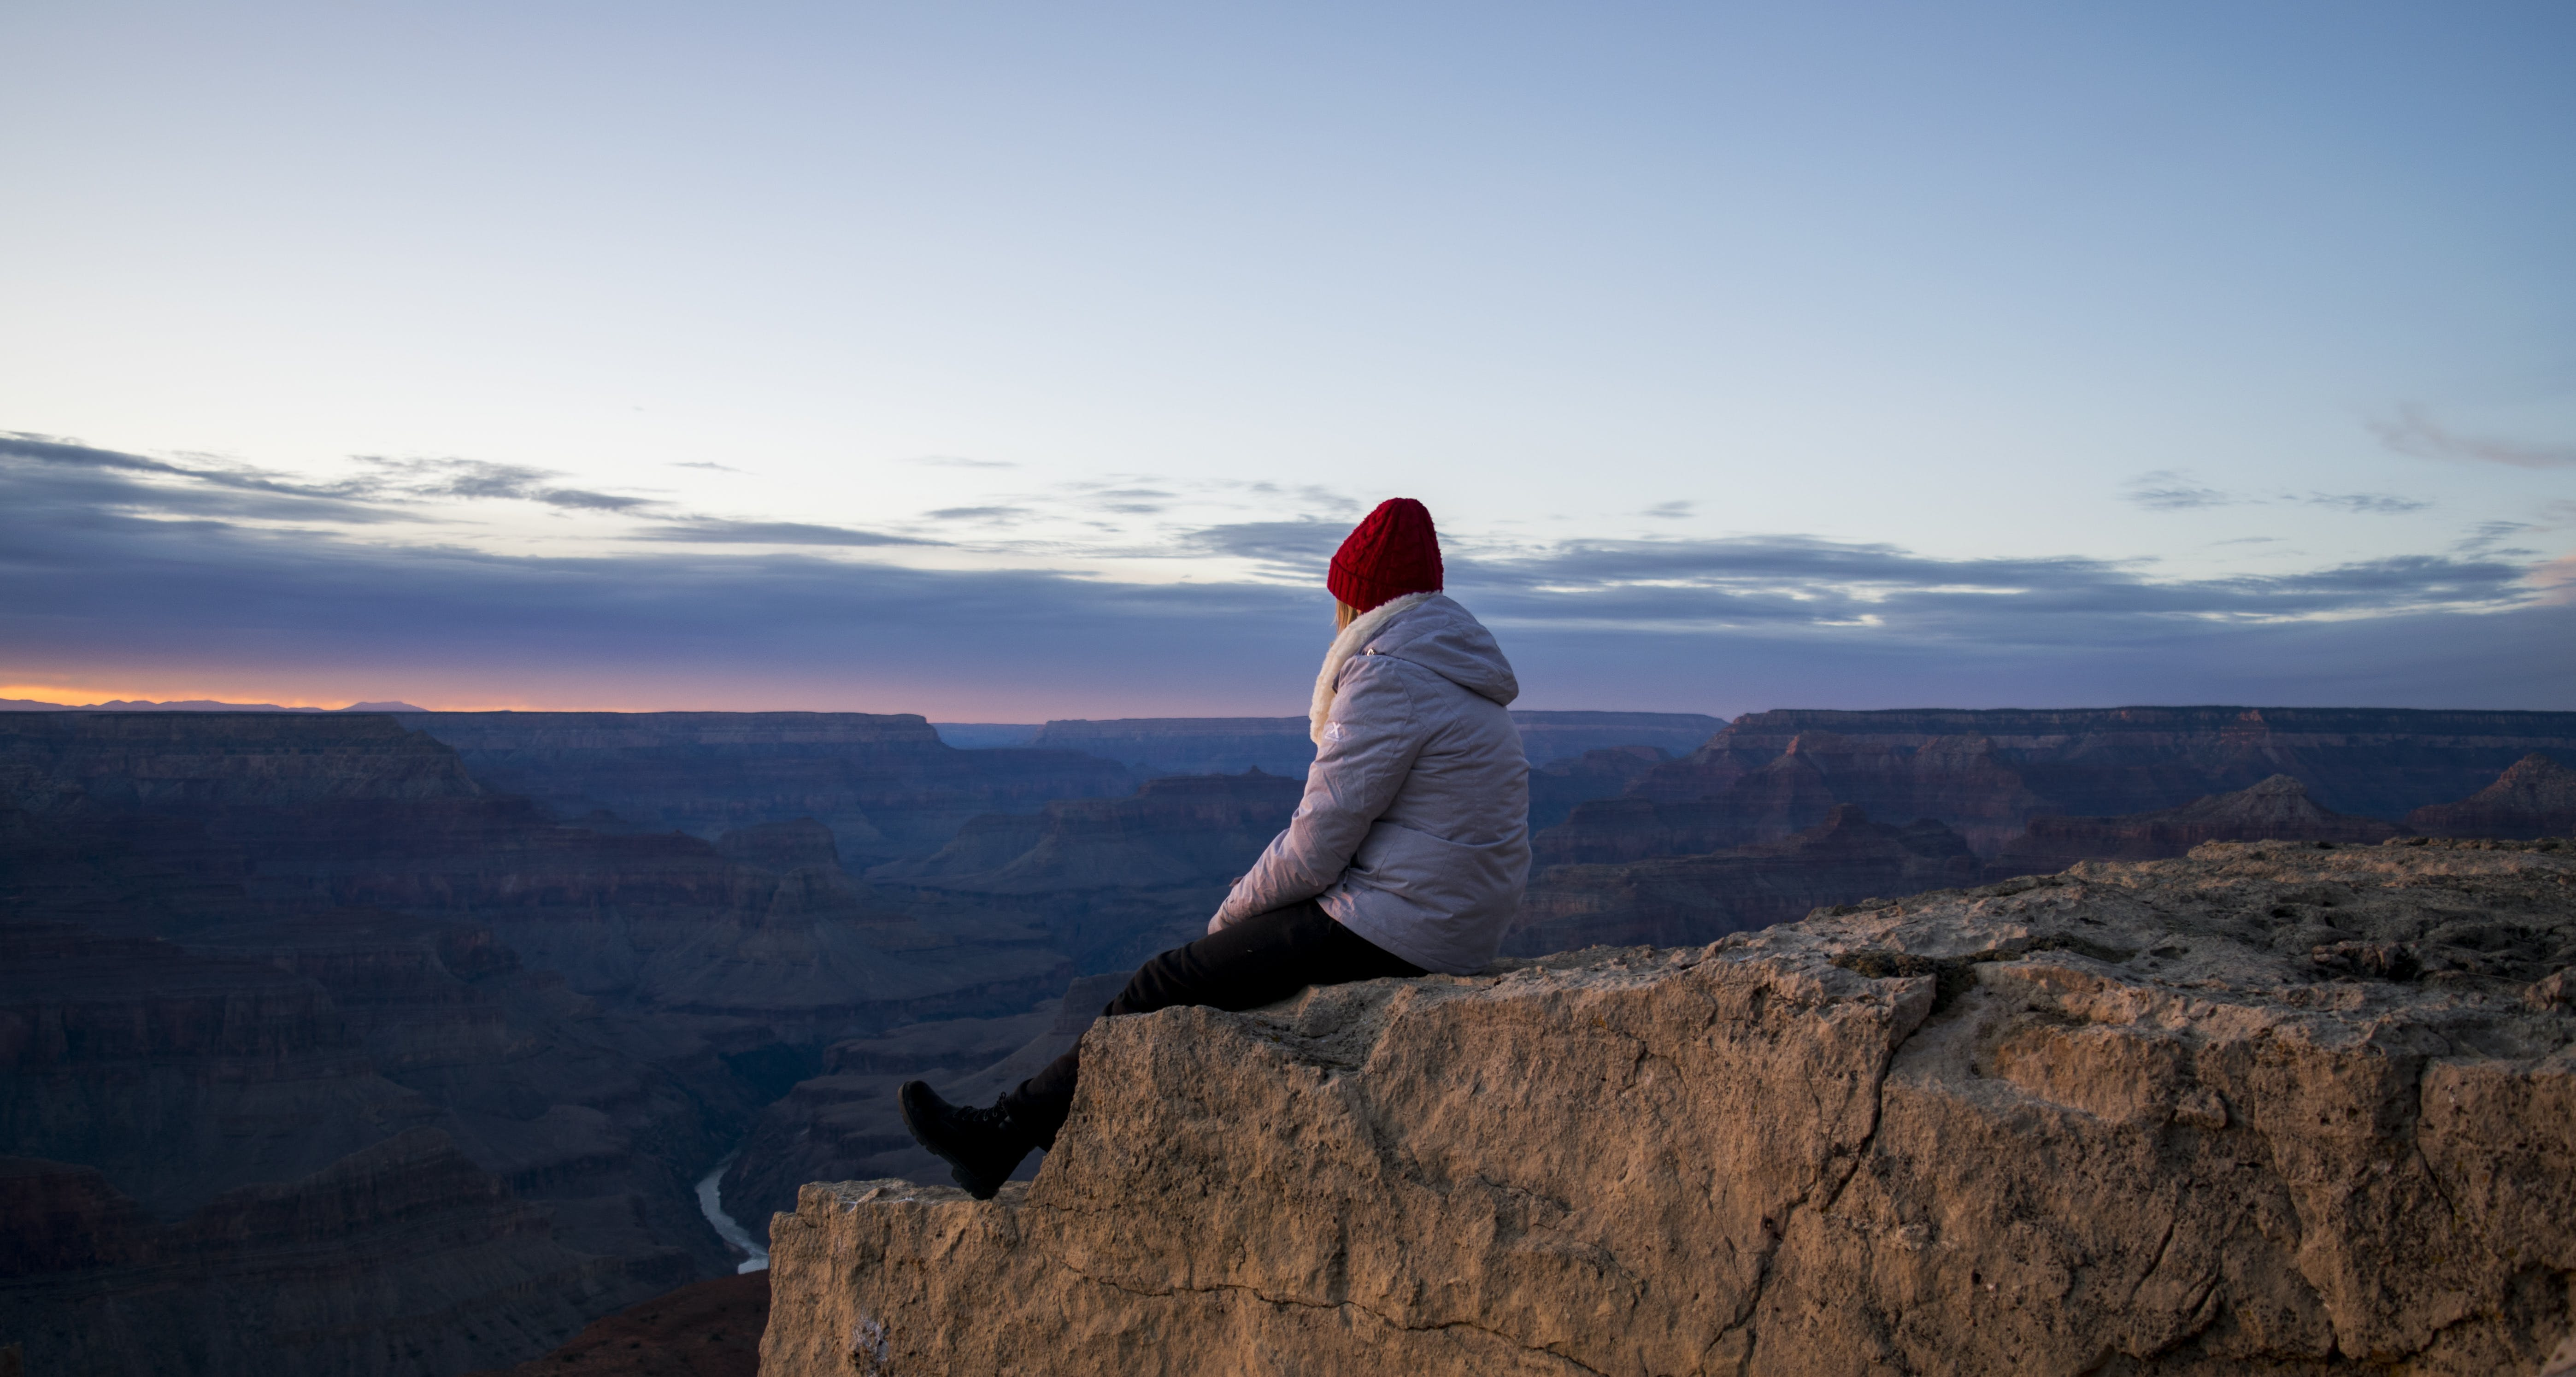 Person Wearing Gray Hooded Jacket and Black Pants Sitting on Mountain Cliff during Sunset